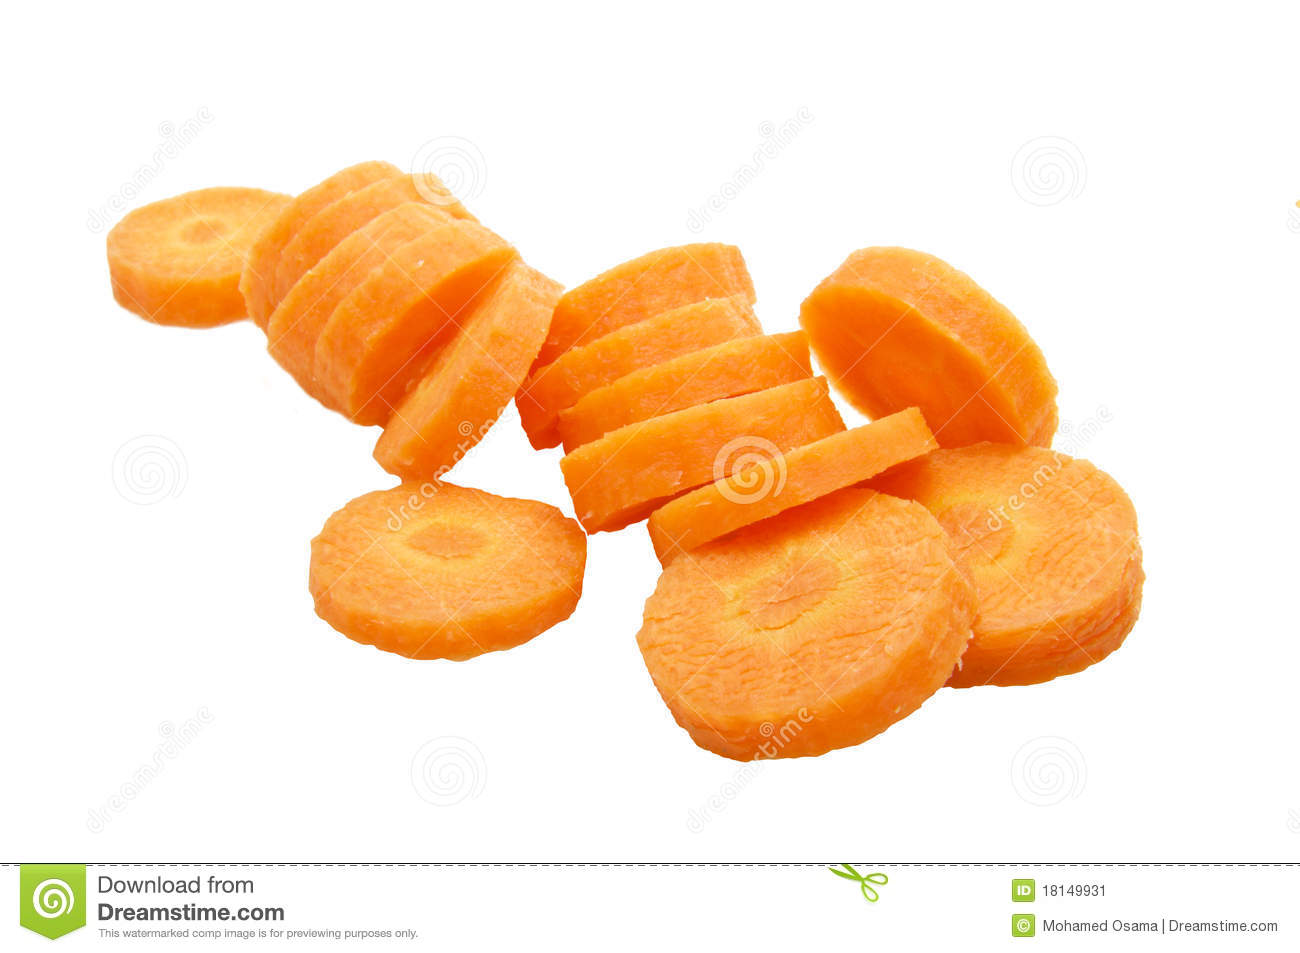 chopped carrots - photo #23